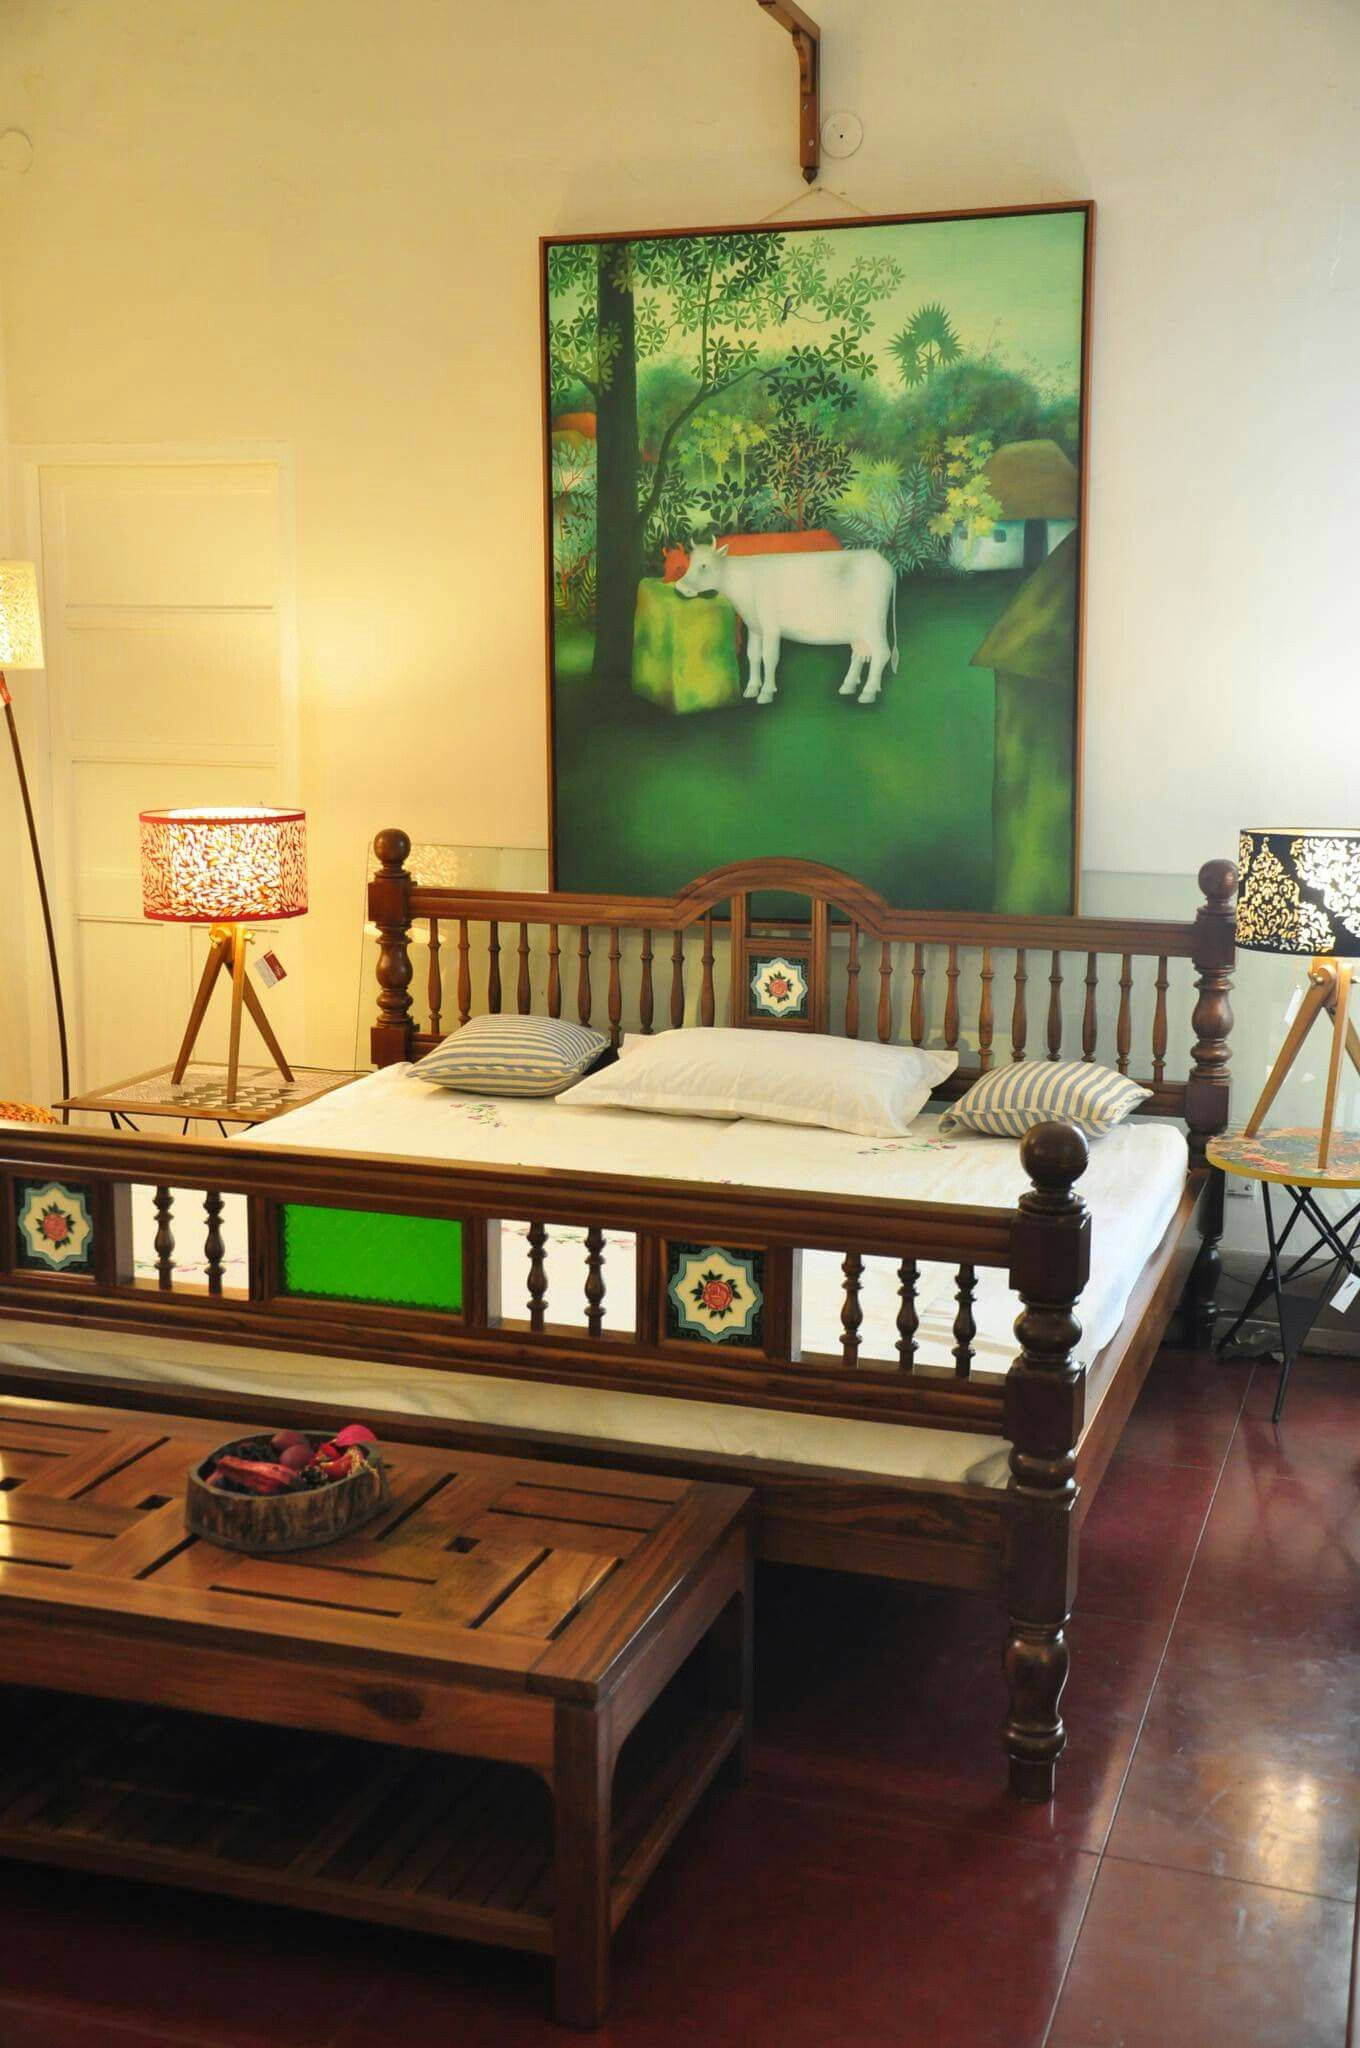 Pin by Gouri Joshi on cozy Indian homes Indian bedroom